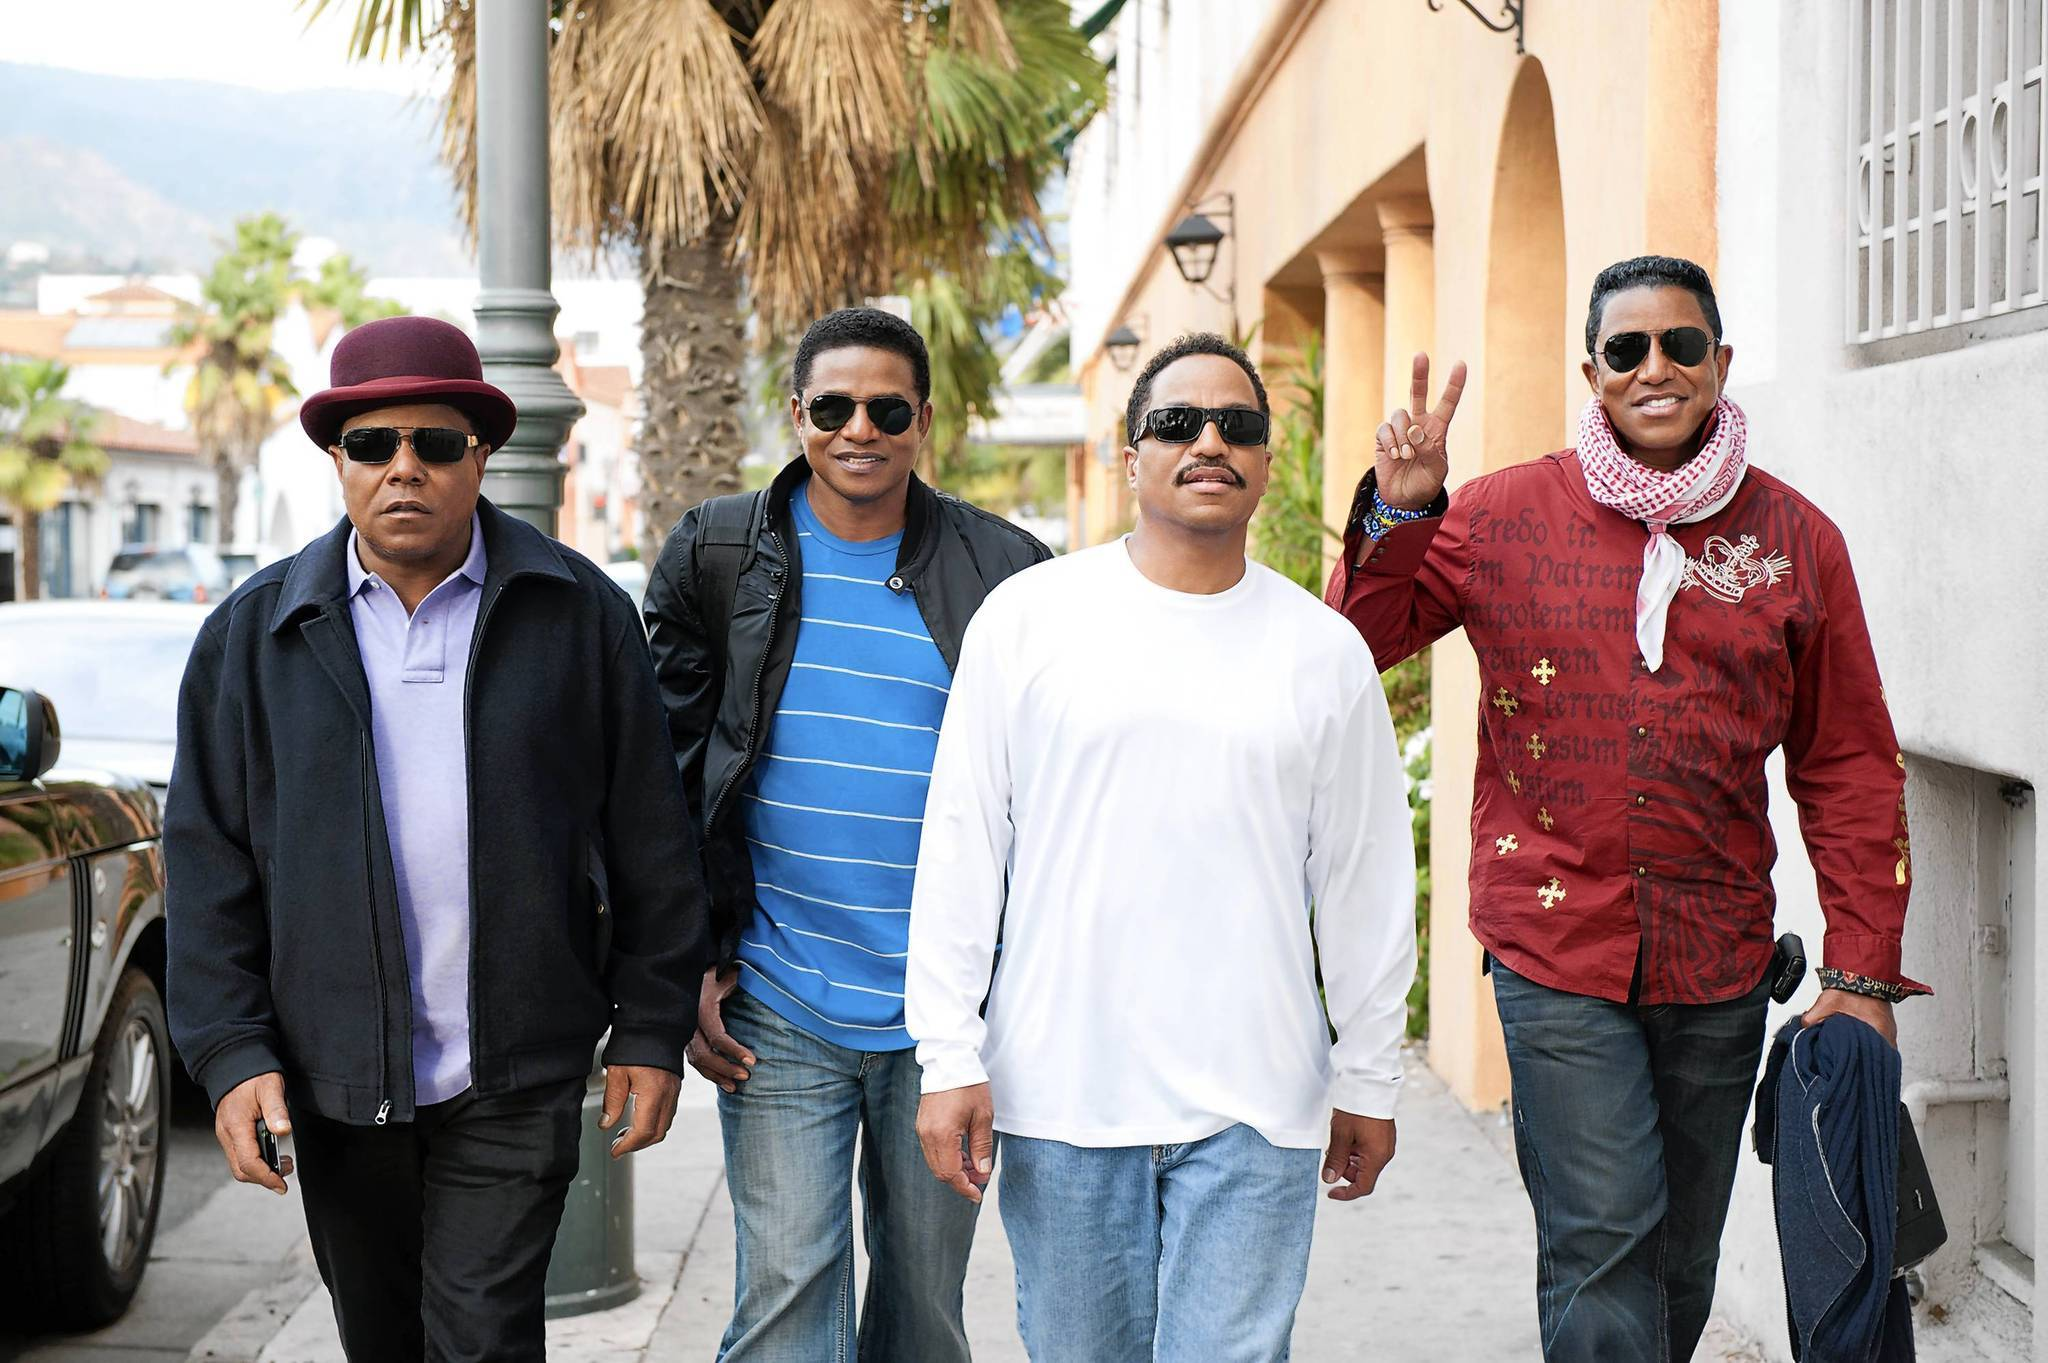 The Jacksons (left to right: Tito, Jackie, Marlon and Jermaine Jackson).